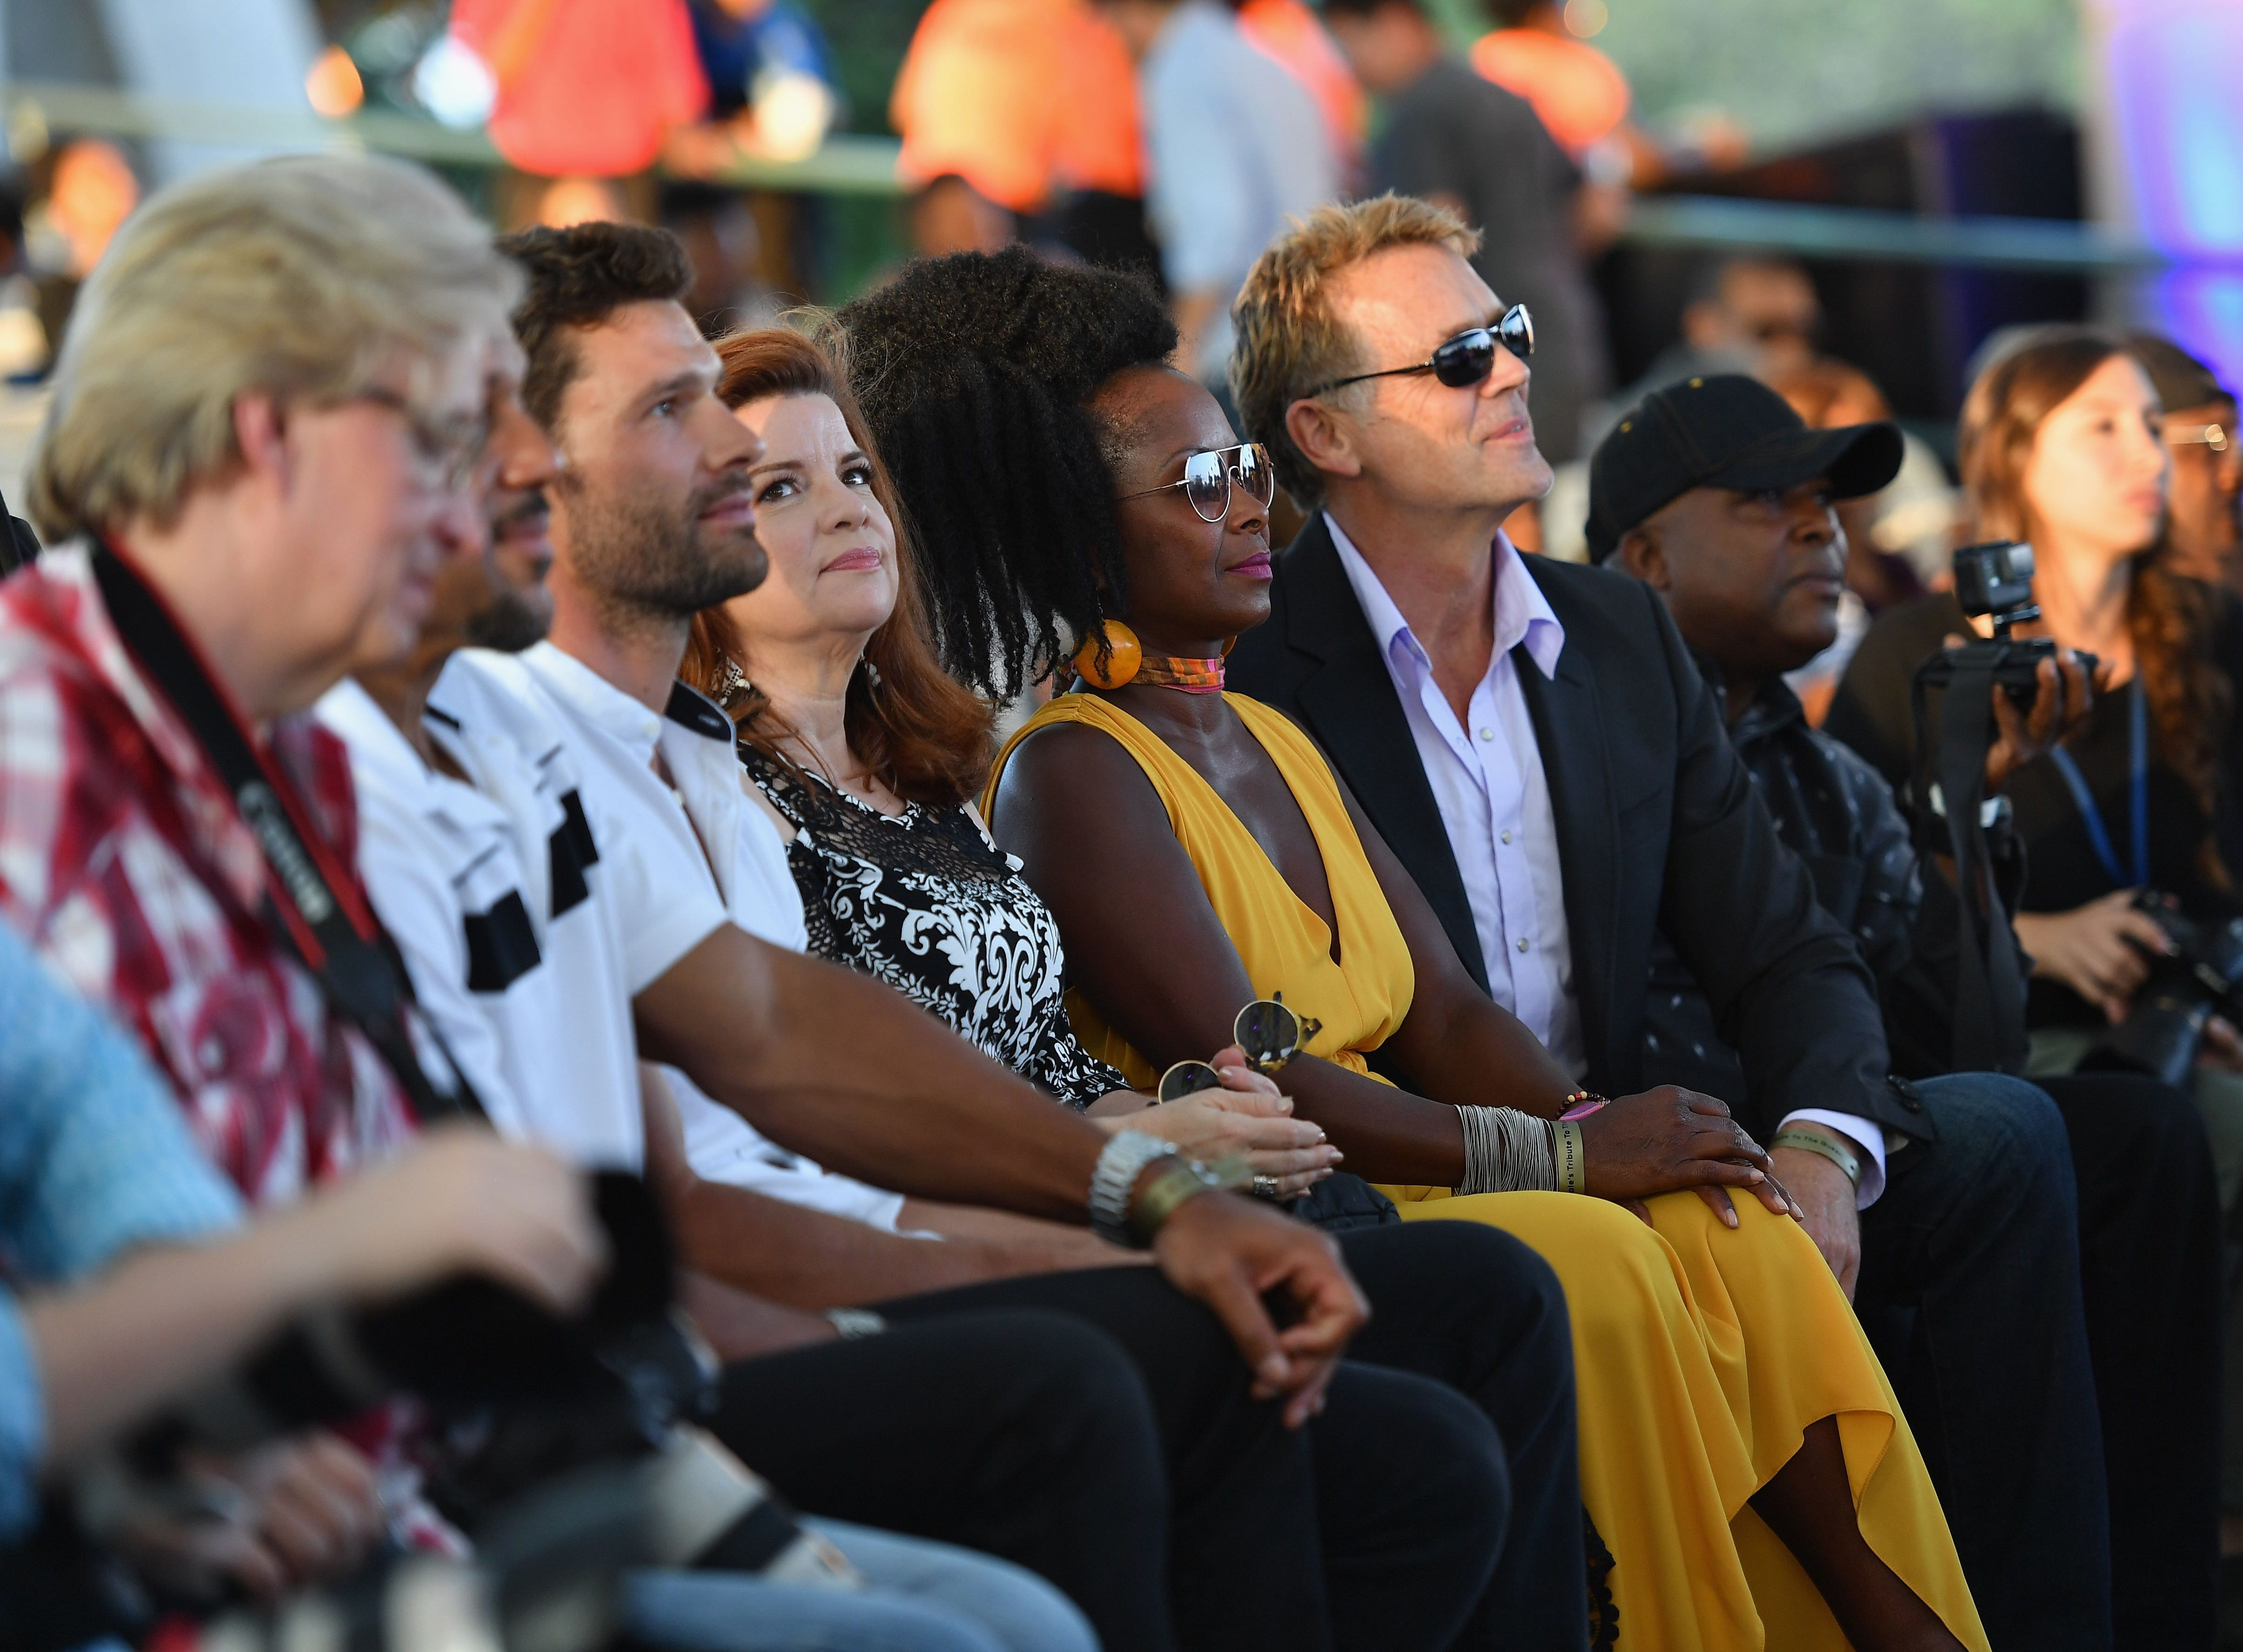 "Cast members from The Tyler Perry Show including (fromL) Aaron O'Connell, Renee Lawless and Crystal R Fox attend ""A People's Tribute to the Queen"", an Aretha Franklin tribute event at Chene Park amphitheatre on August 30, 2018 in Detroit, Michigan. - The 76-year-old singer, beloved by millions around the world, died of cancer on August 16, closing the curtain on a glittering six-decade career that made her one of America's most celebrated artists. (Photo by Angela Weiss / AFP)ANGELA WEISS/AFP/Getty Images ORIG FILE ID: AFP_18Q4EW"